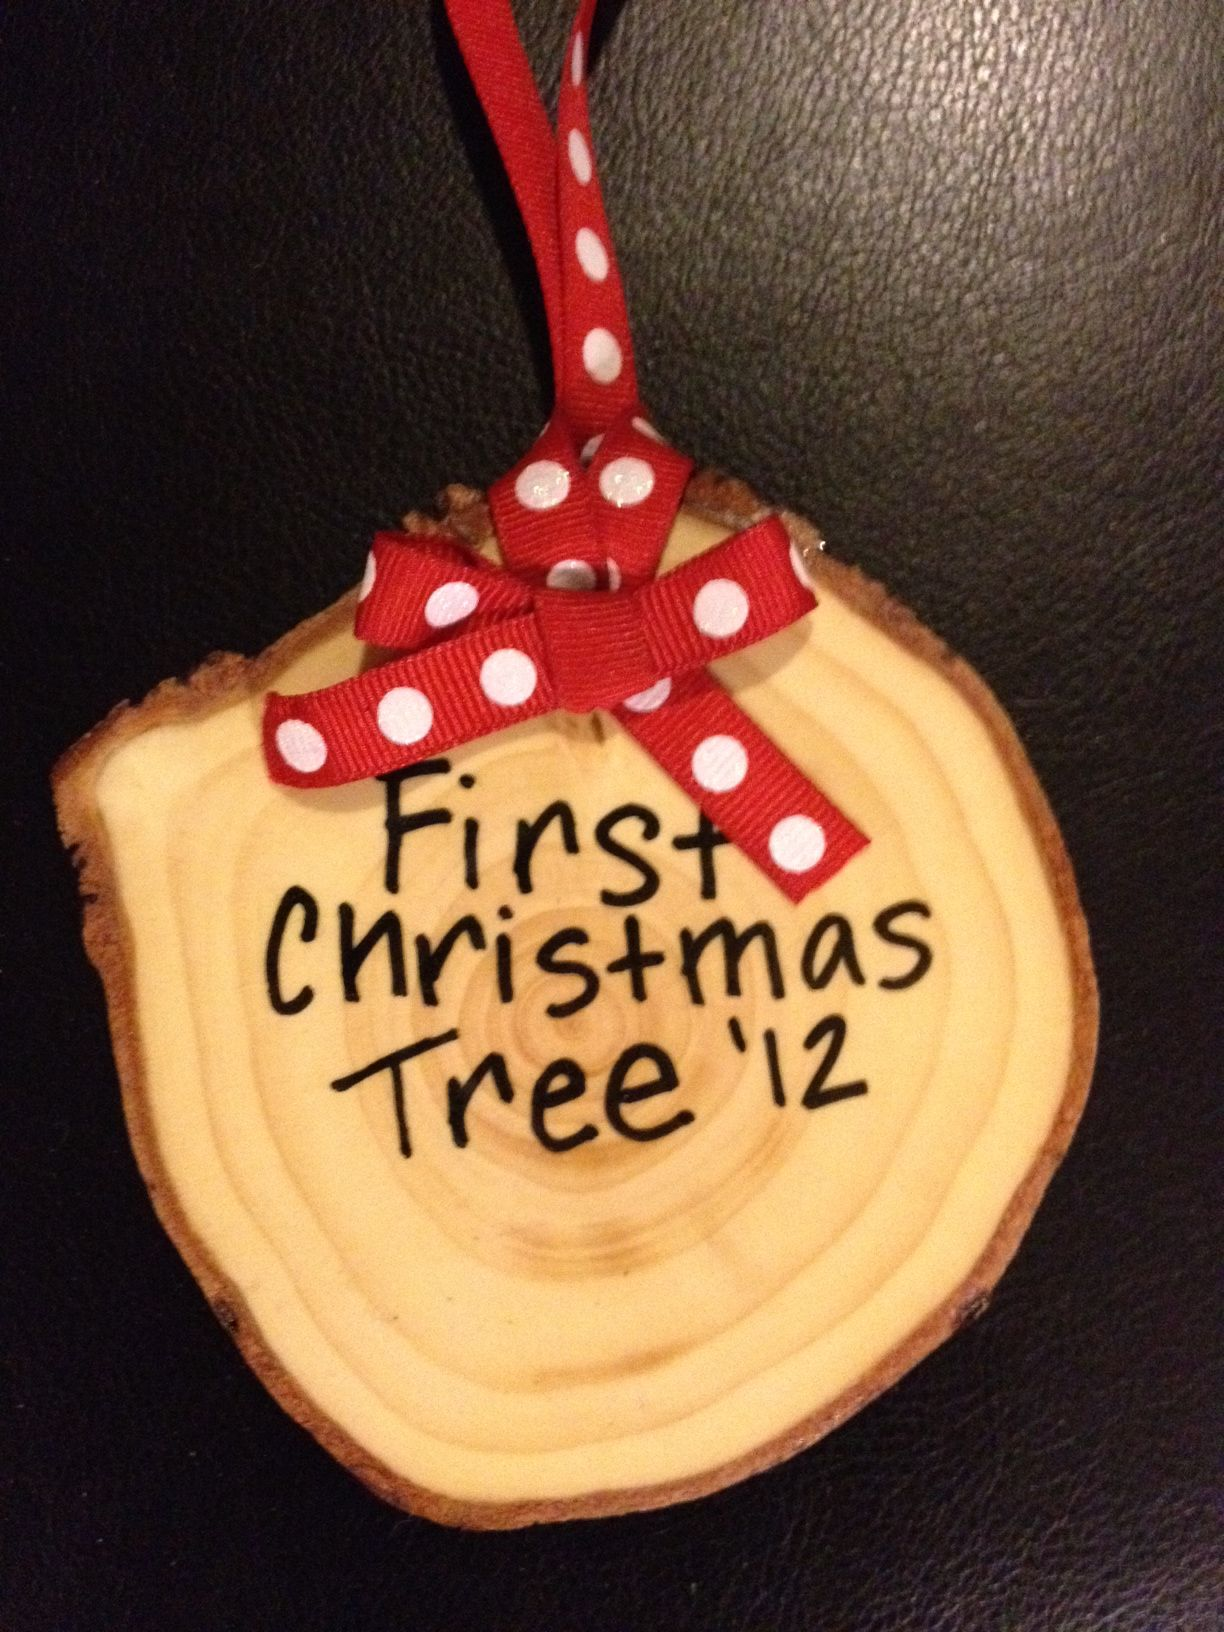 Tree trunk ornament from our 1st Christmas tree!